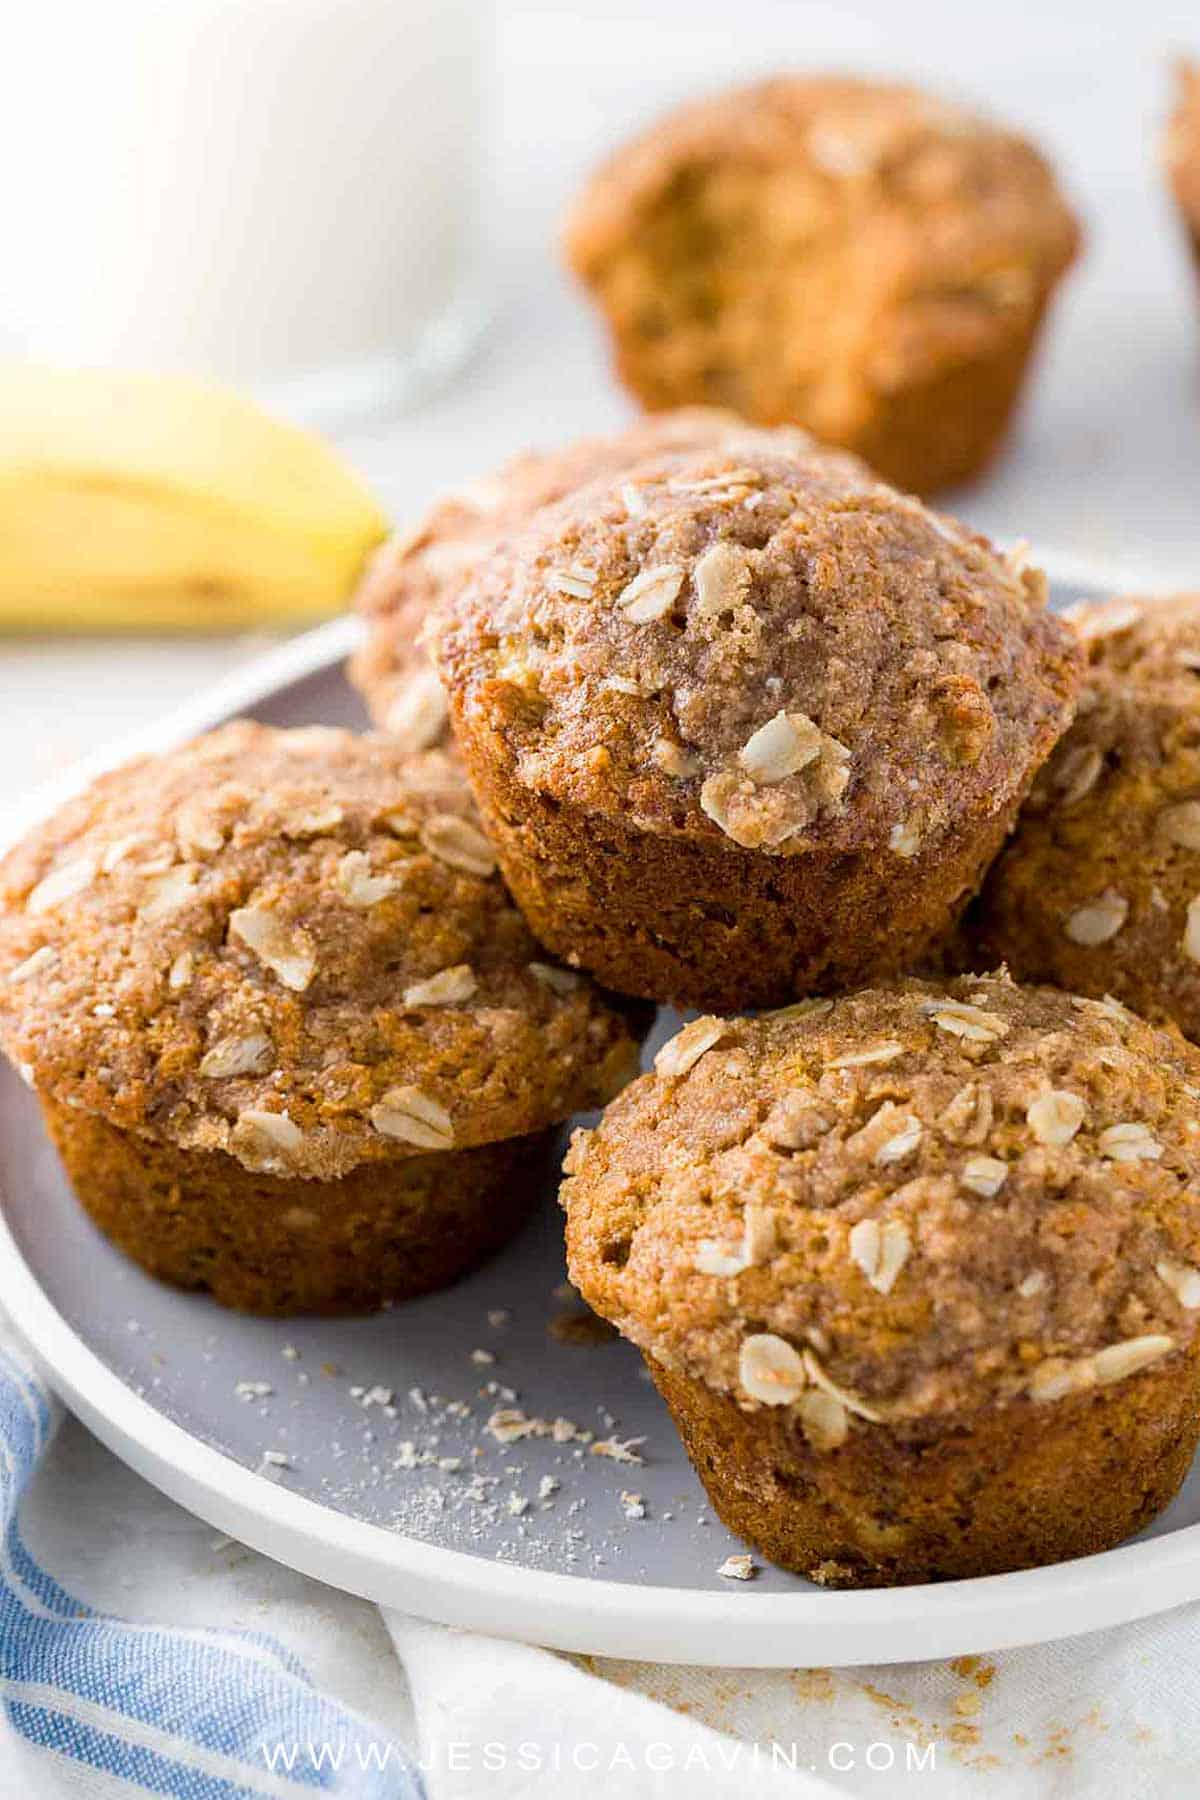 Healthy Banana Muffins with Oats